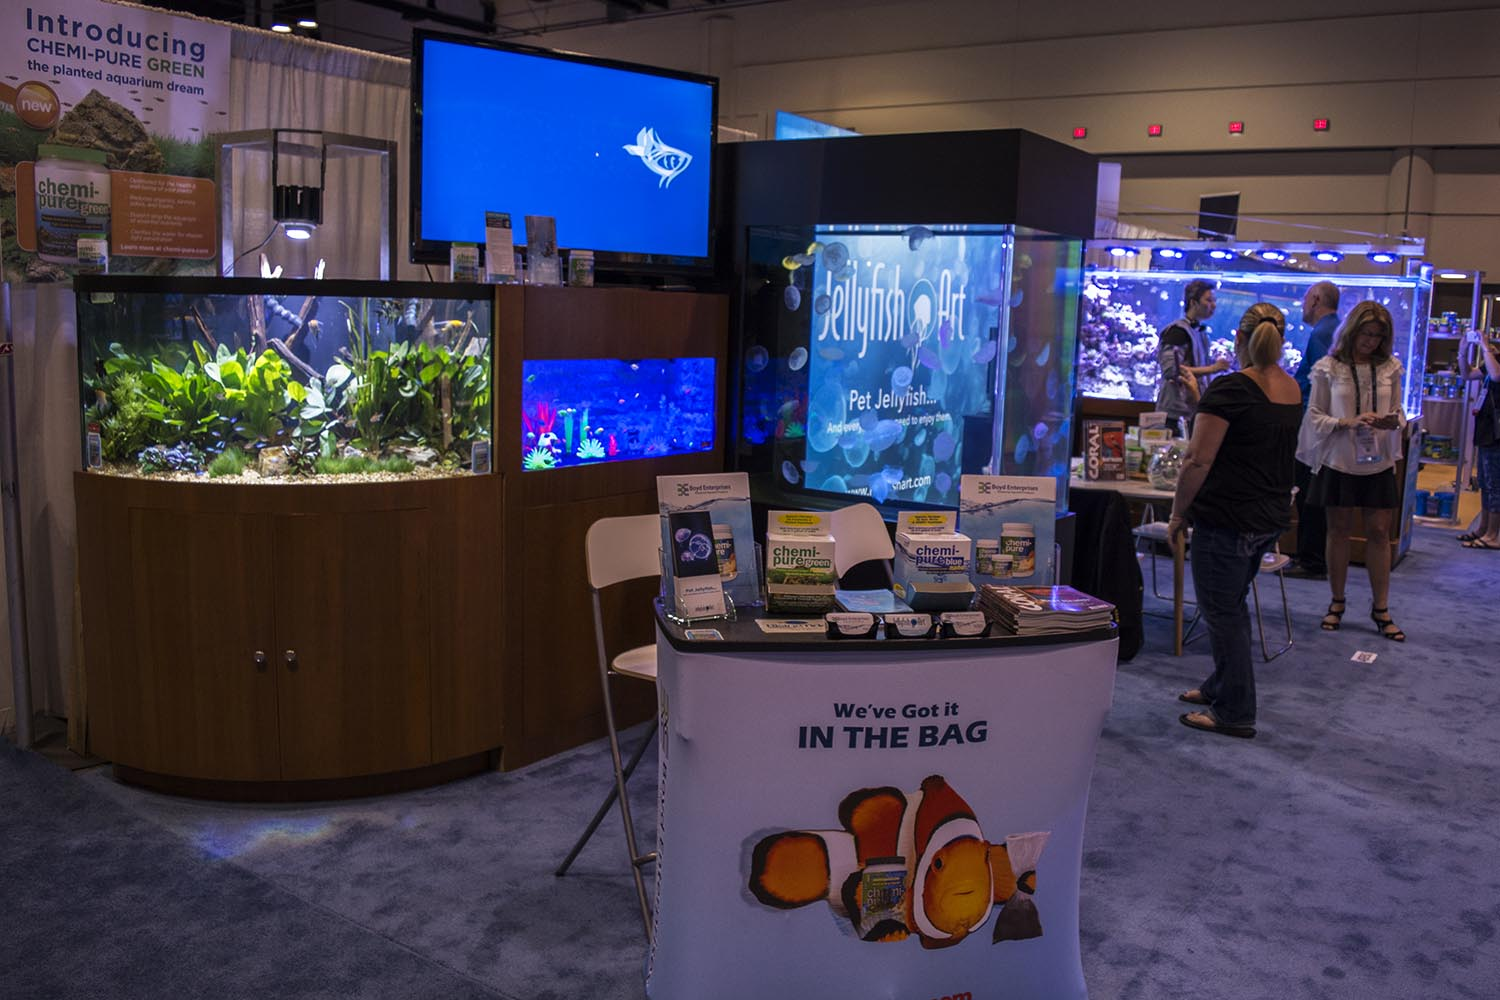 Boyd Enterprises (Chemipure) and Reef Aquaria Design always go all-out for one of the most impressive displays at the show.